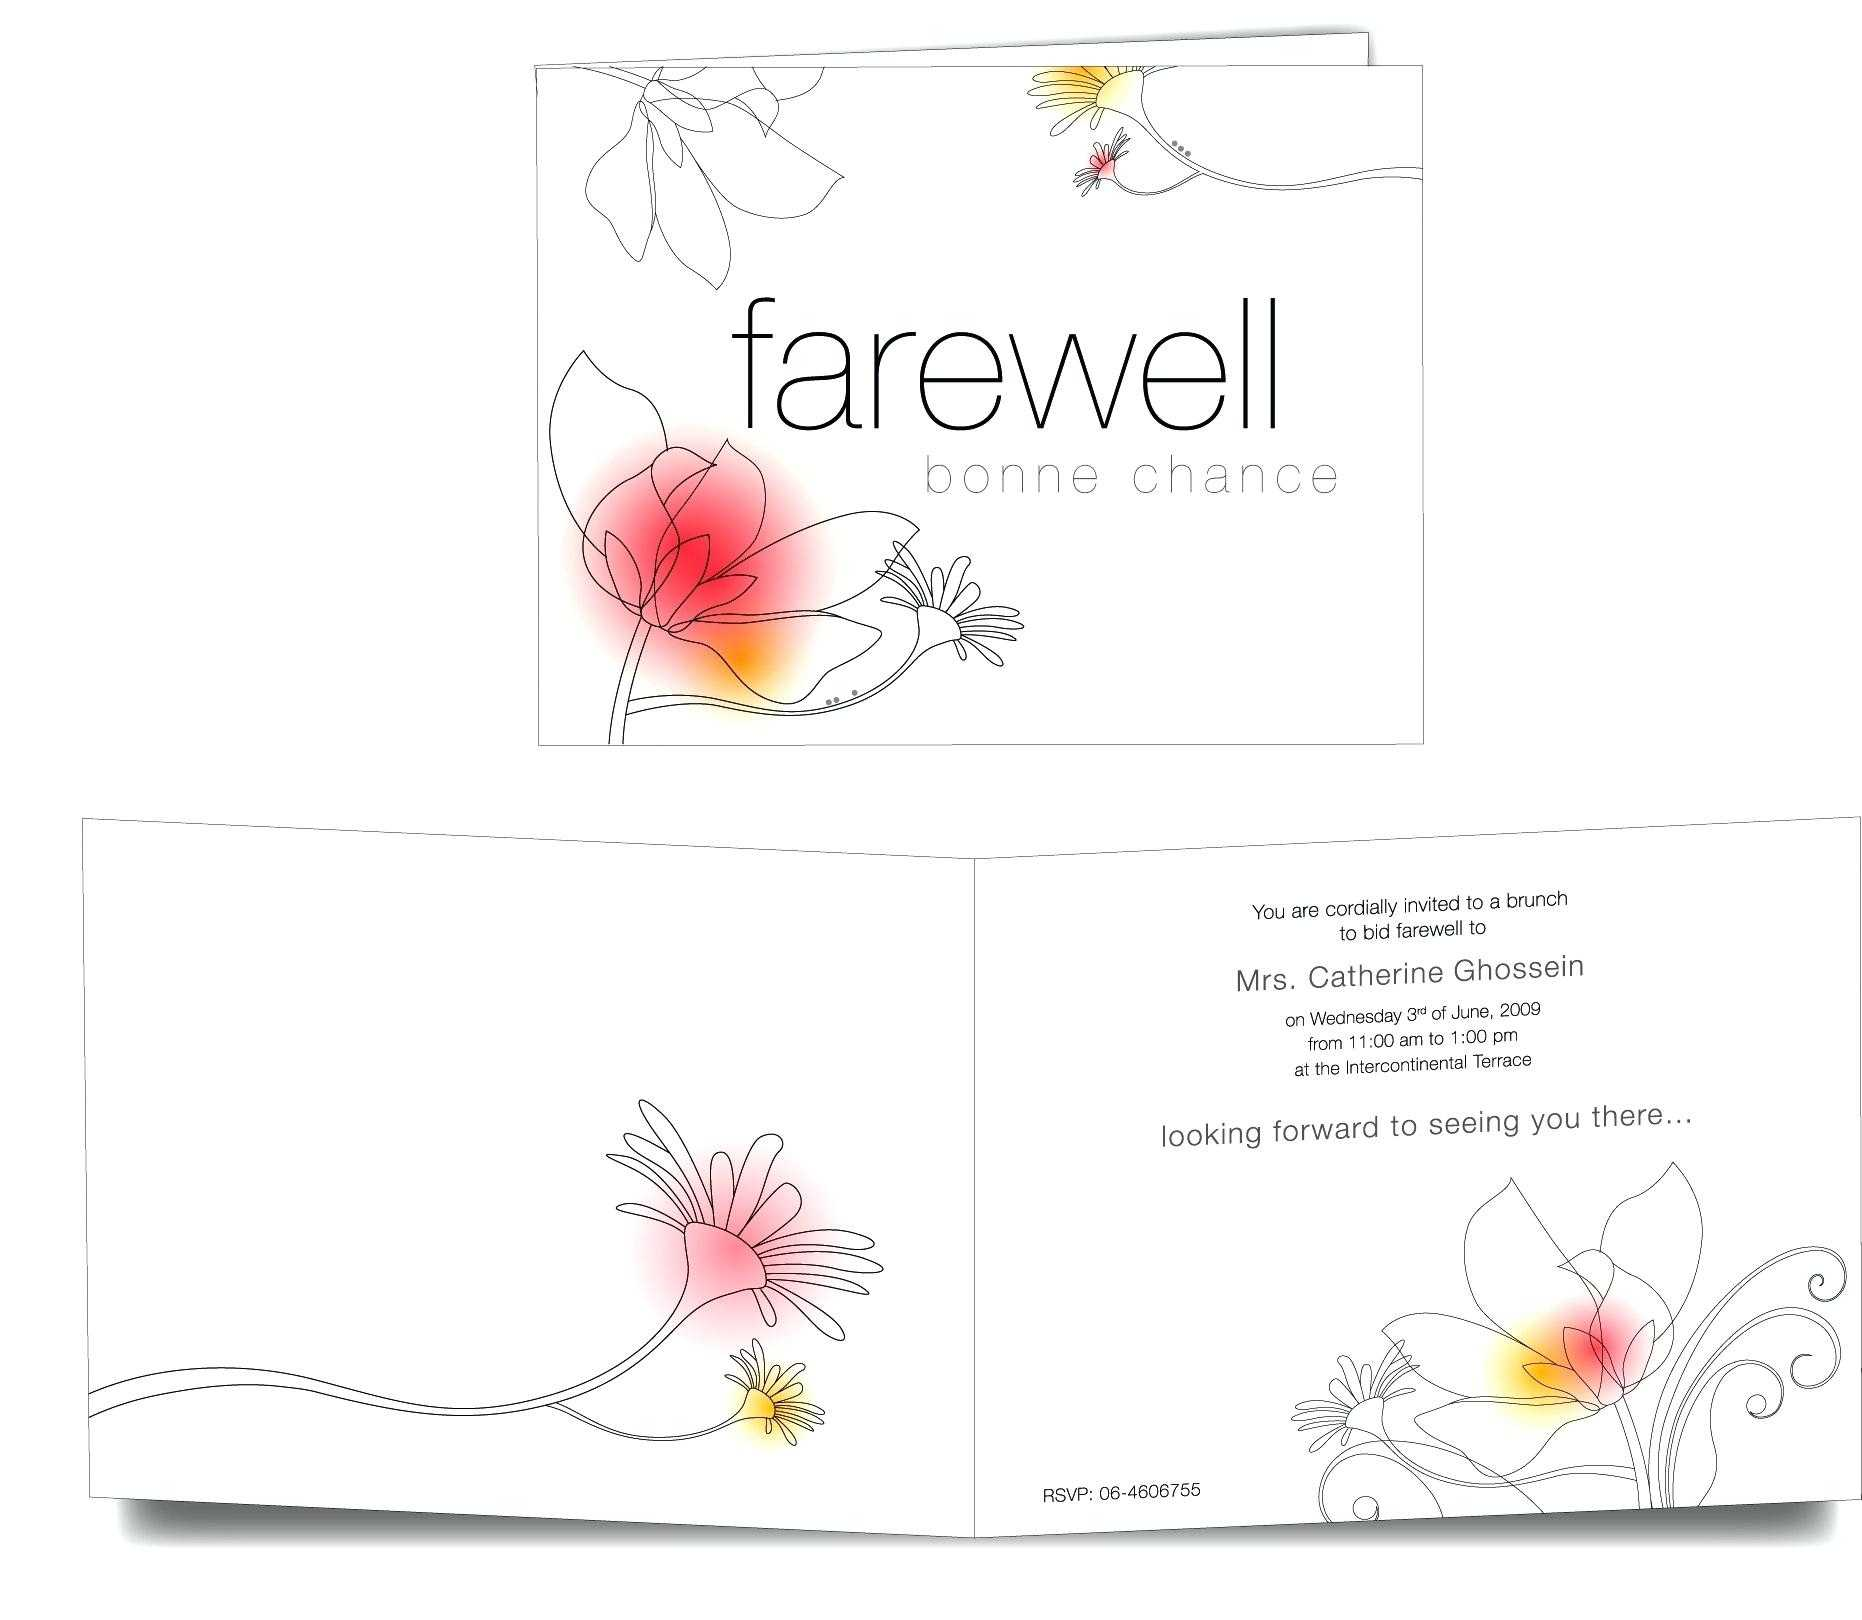 013 Boss Farewell Invitation Daily Motivational Quotes Send Throughout Goodbye Card Template